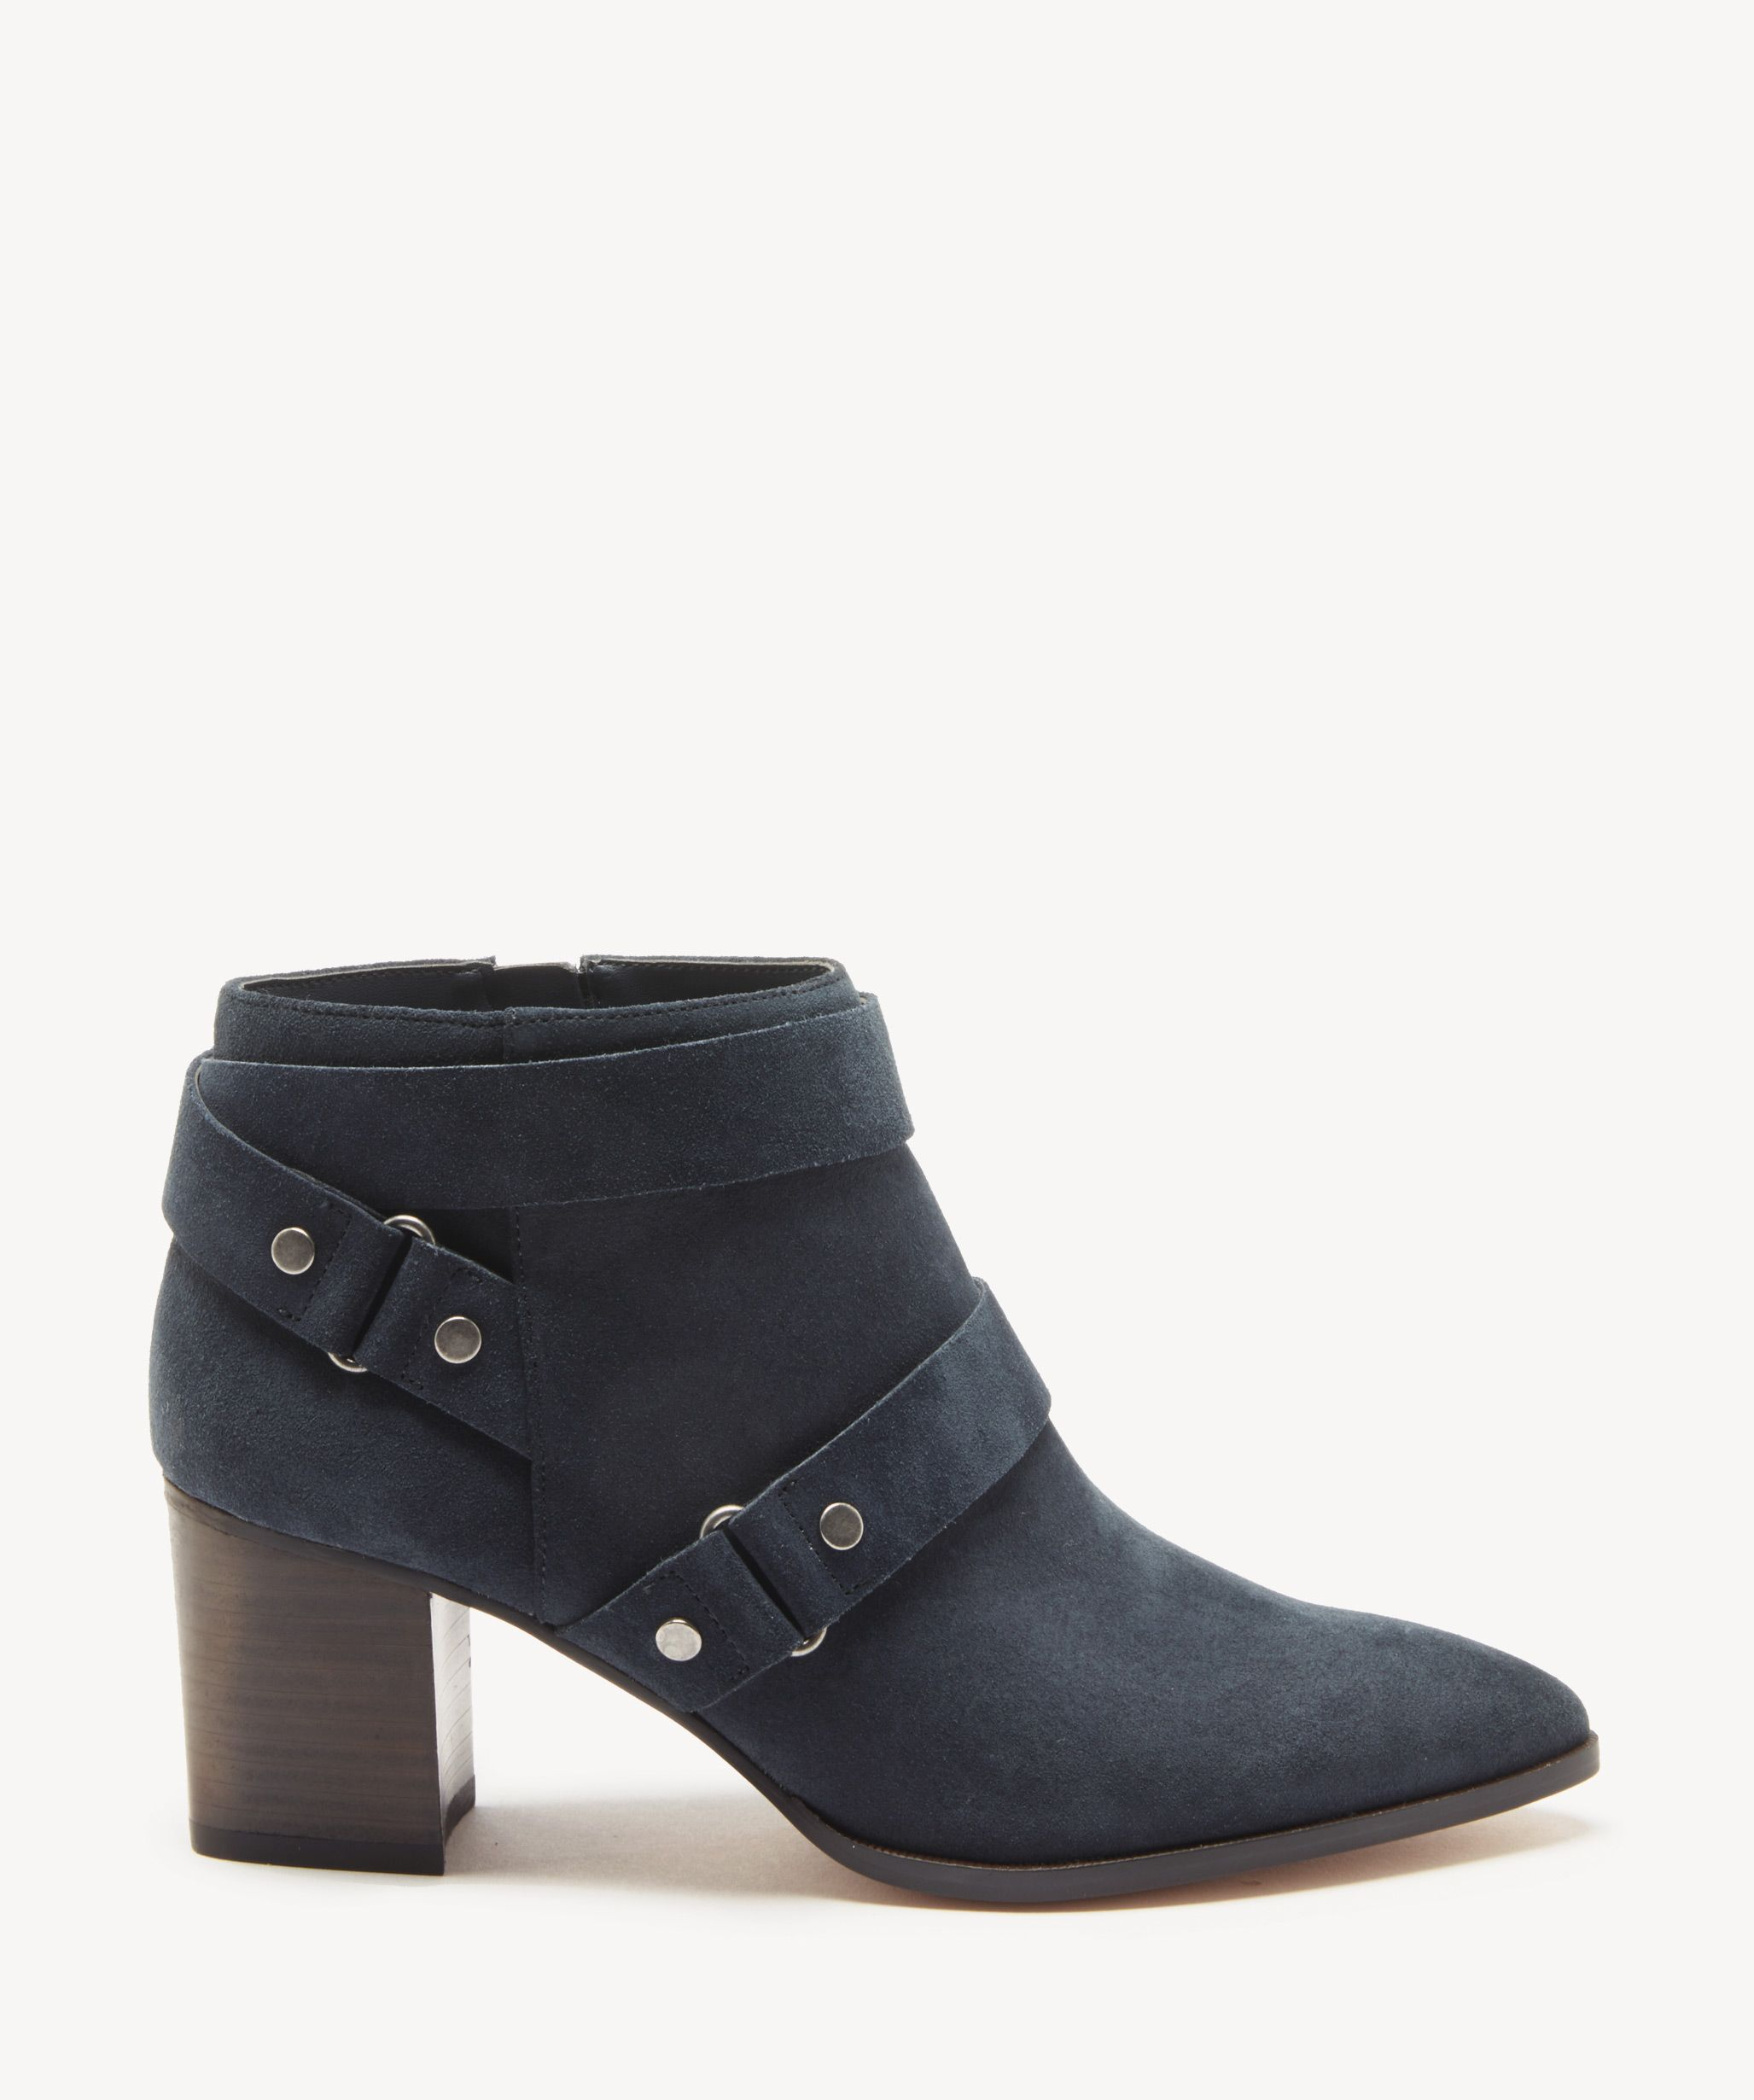 Sole Society: Dariela Ankle Bootie - $100